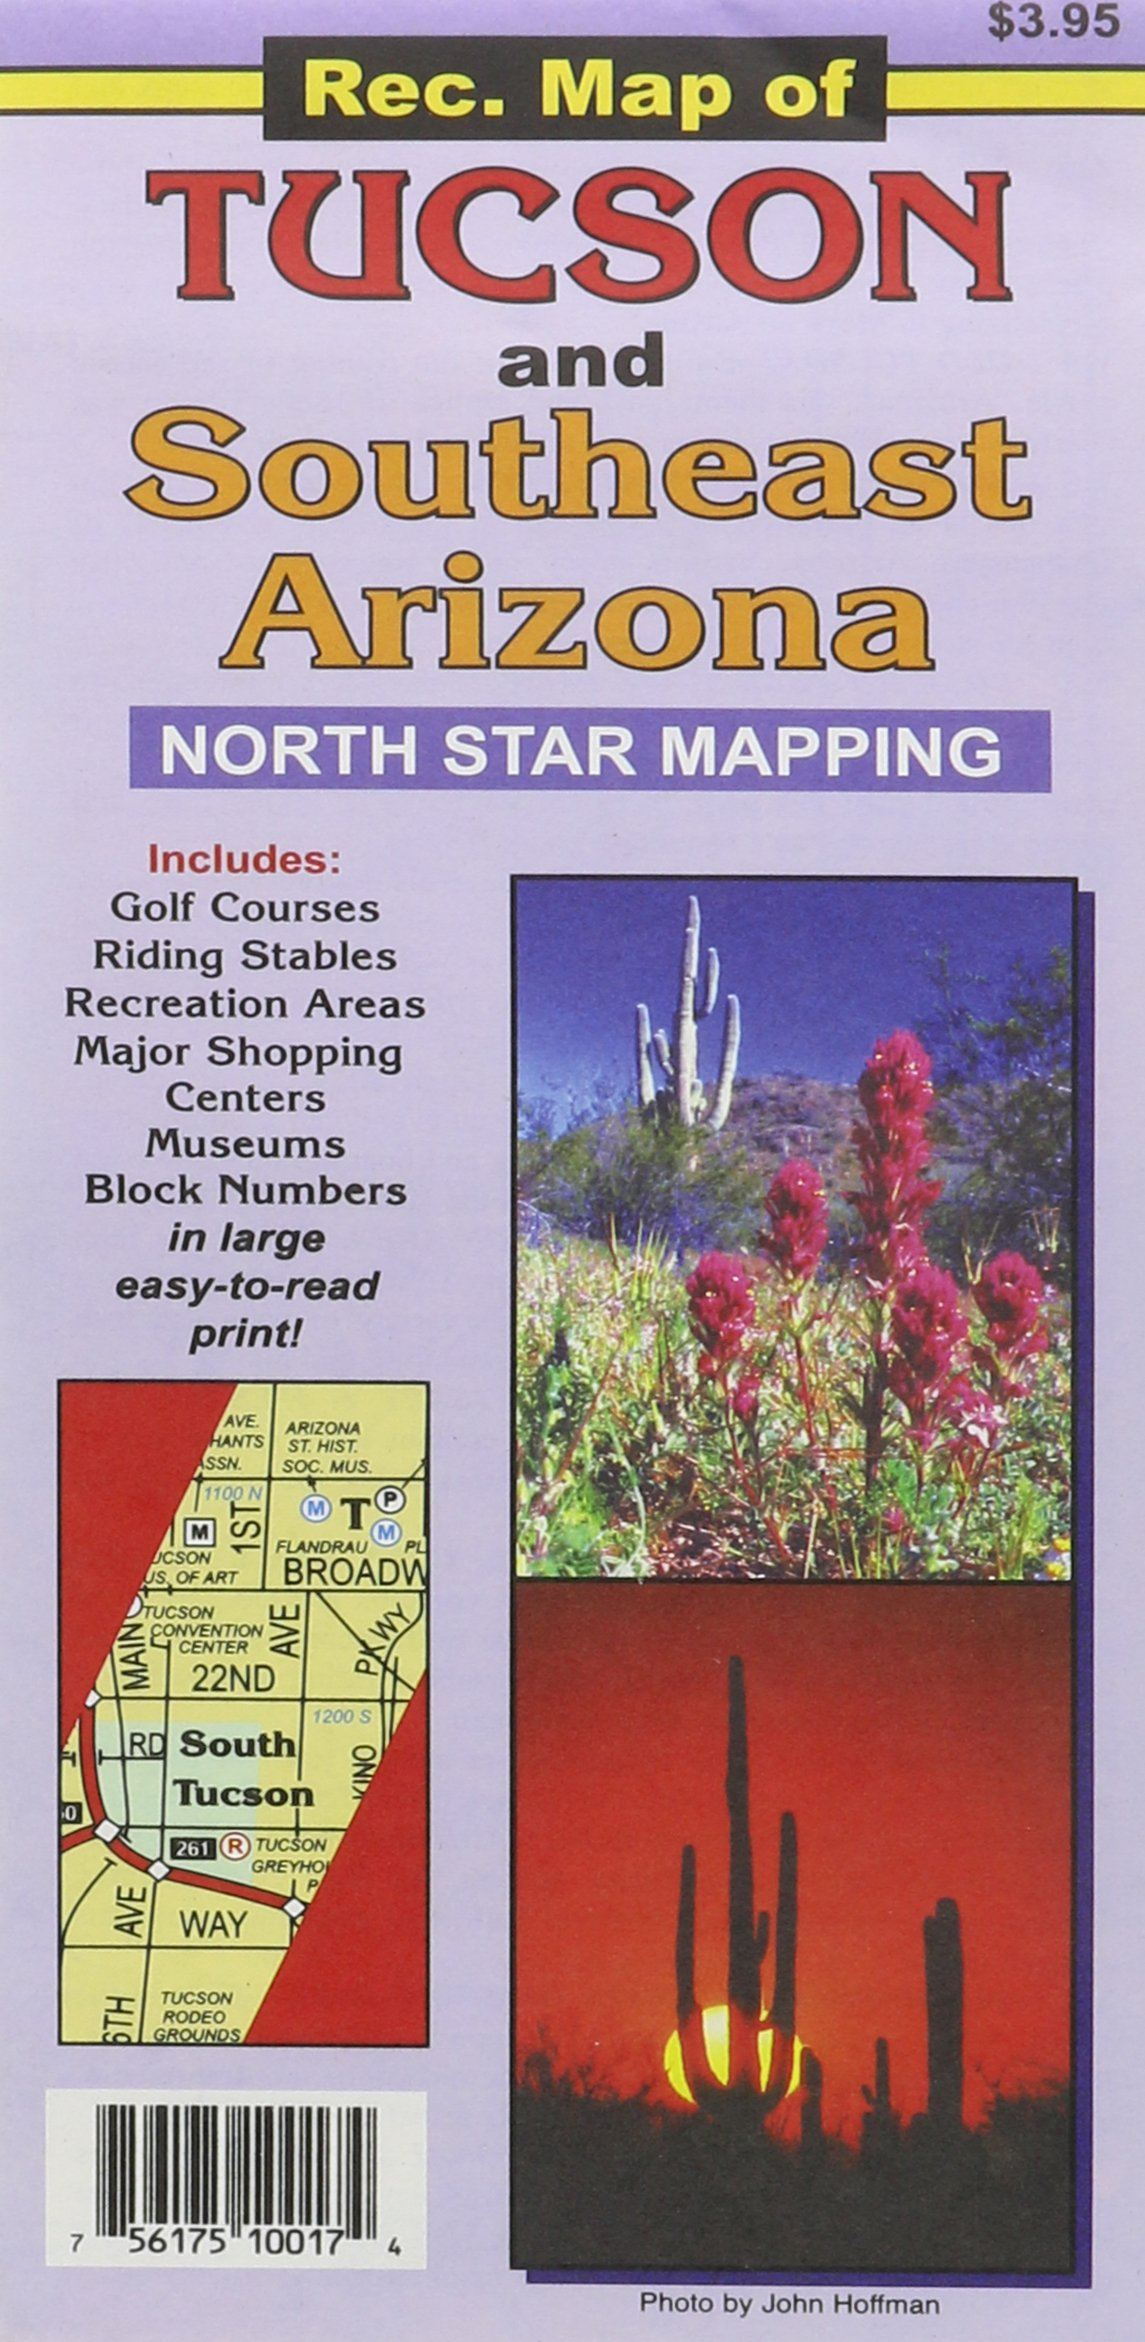 Map Of Southeast Arizona.Rec Map Of Tucson And Southeast Arizona North Star Mapping